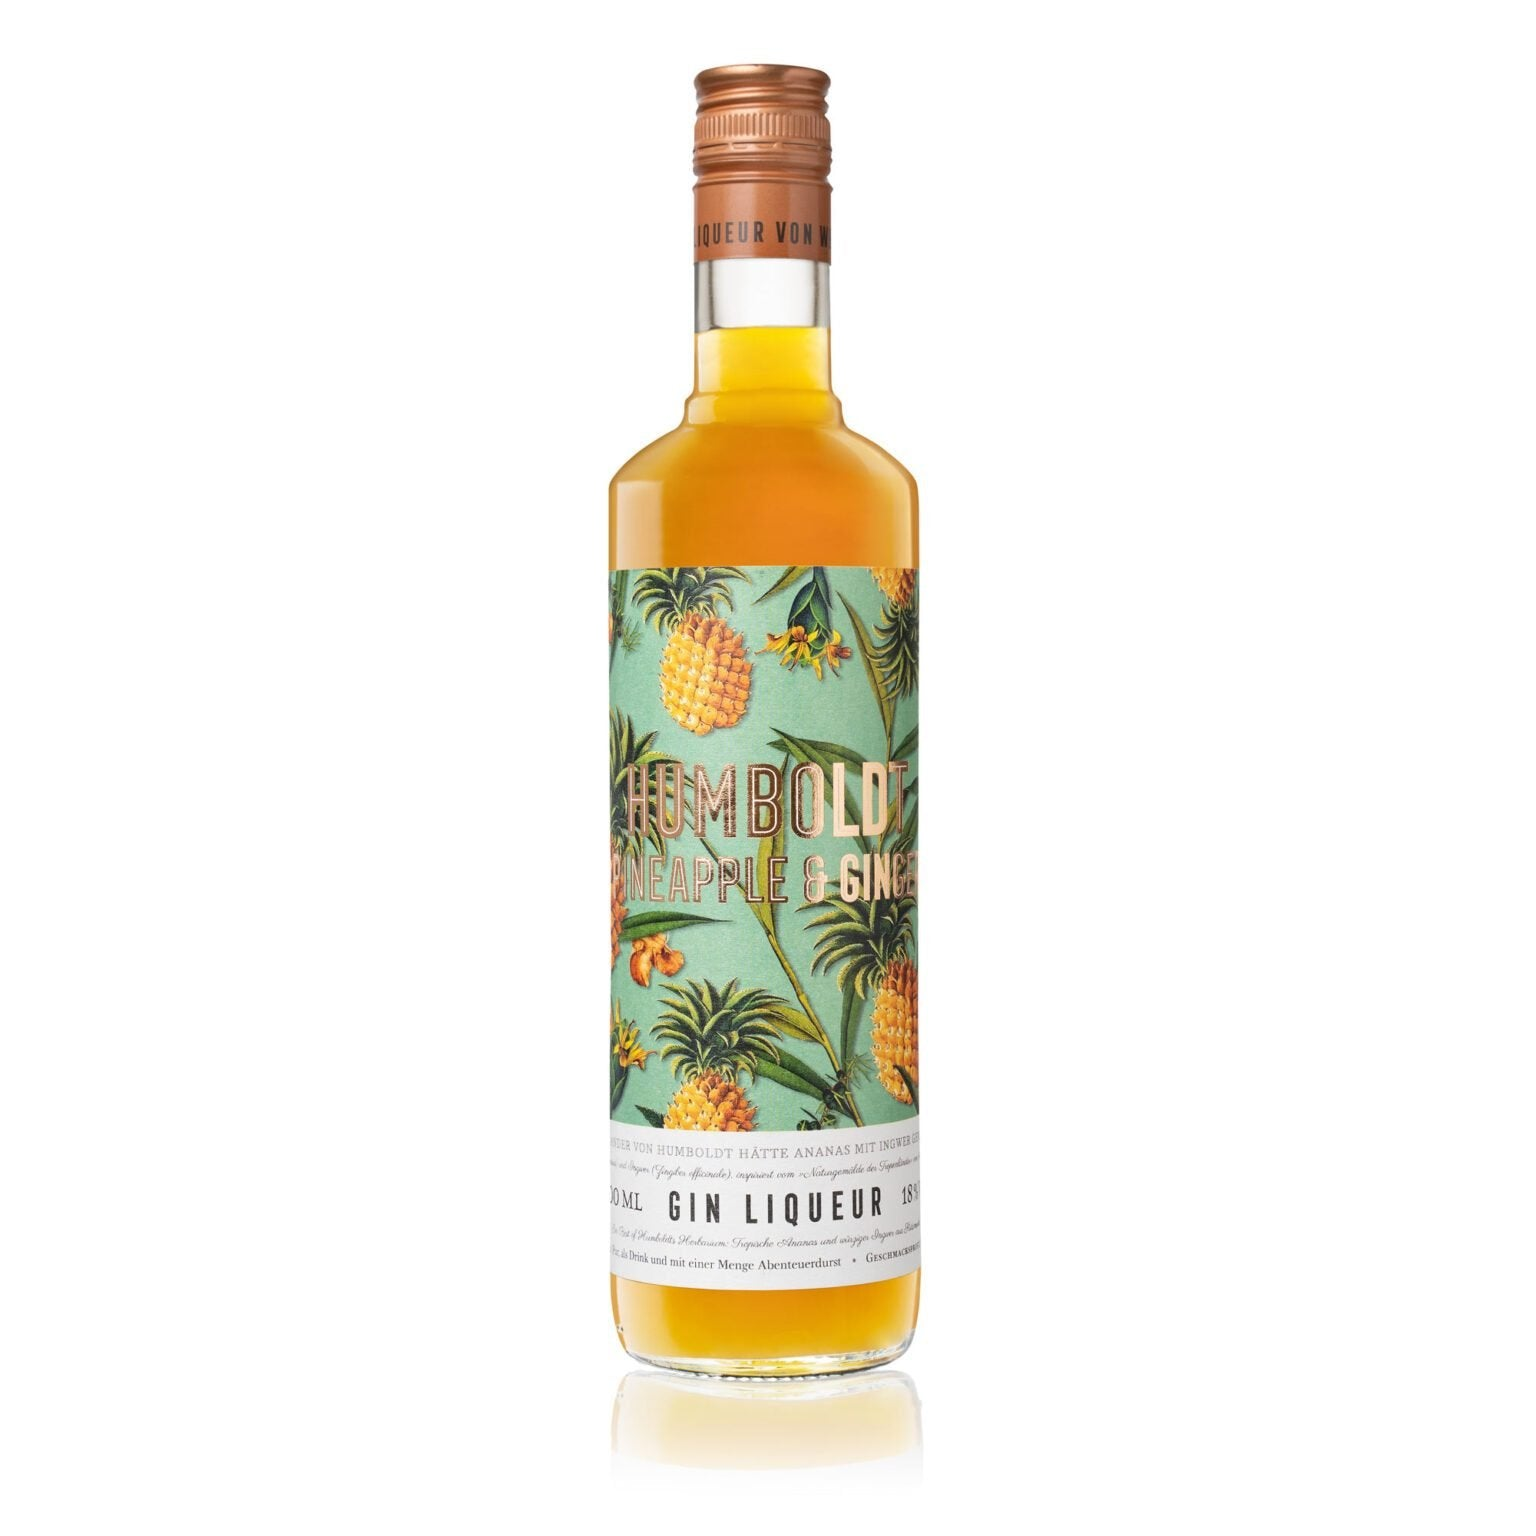 HUMBOLDT Pineapple & Ginger Liqueur -18%  700ml